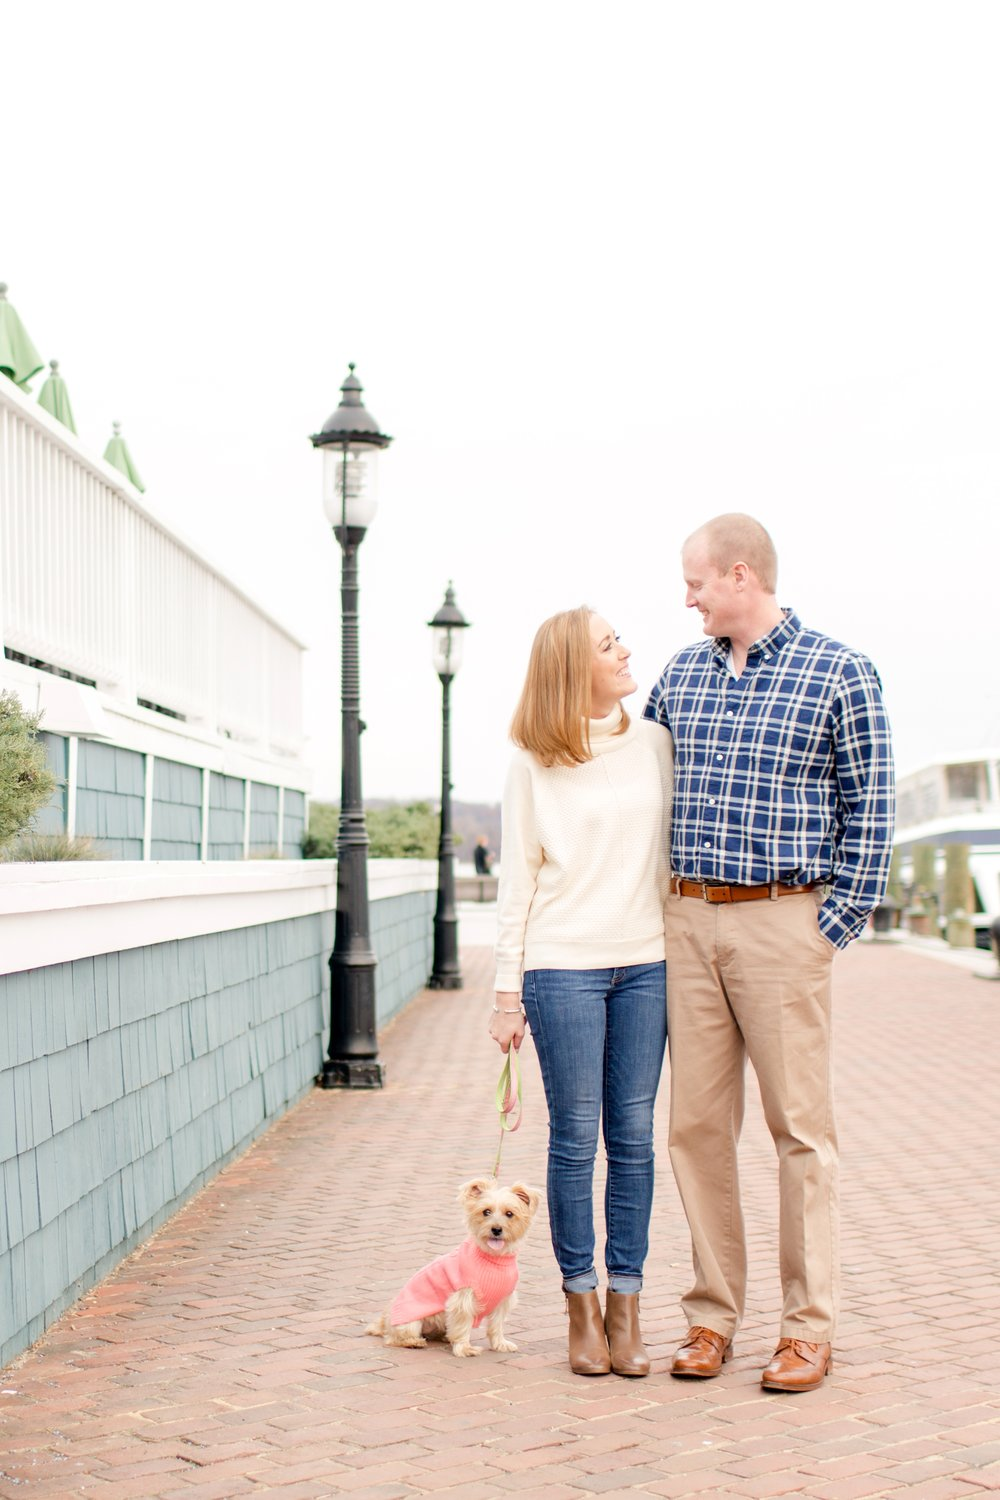 Kristin & Matt Engagement-83_anna grace photography old town alexandria virginia engagement and wedding photographer photo.jpg